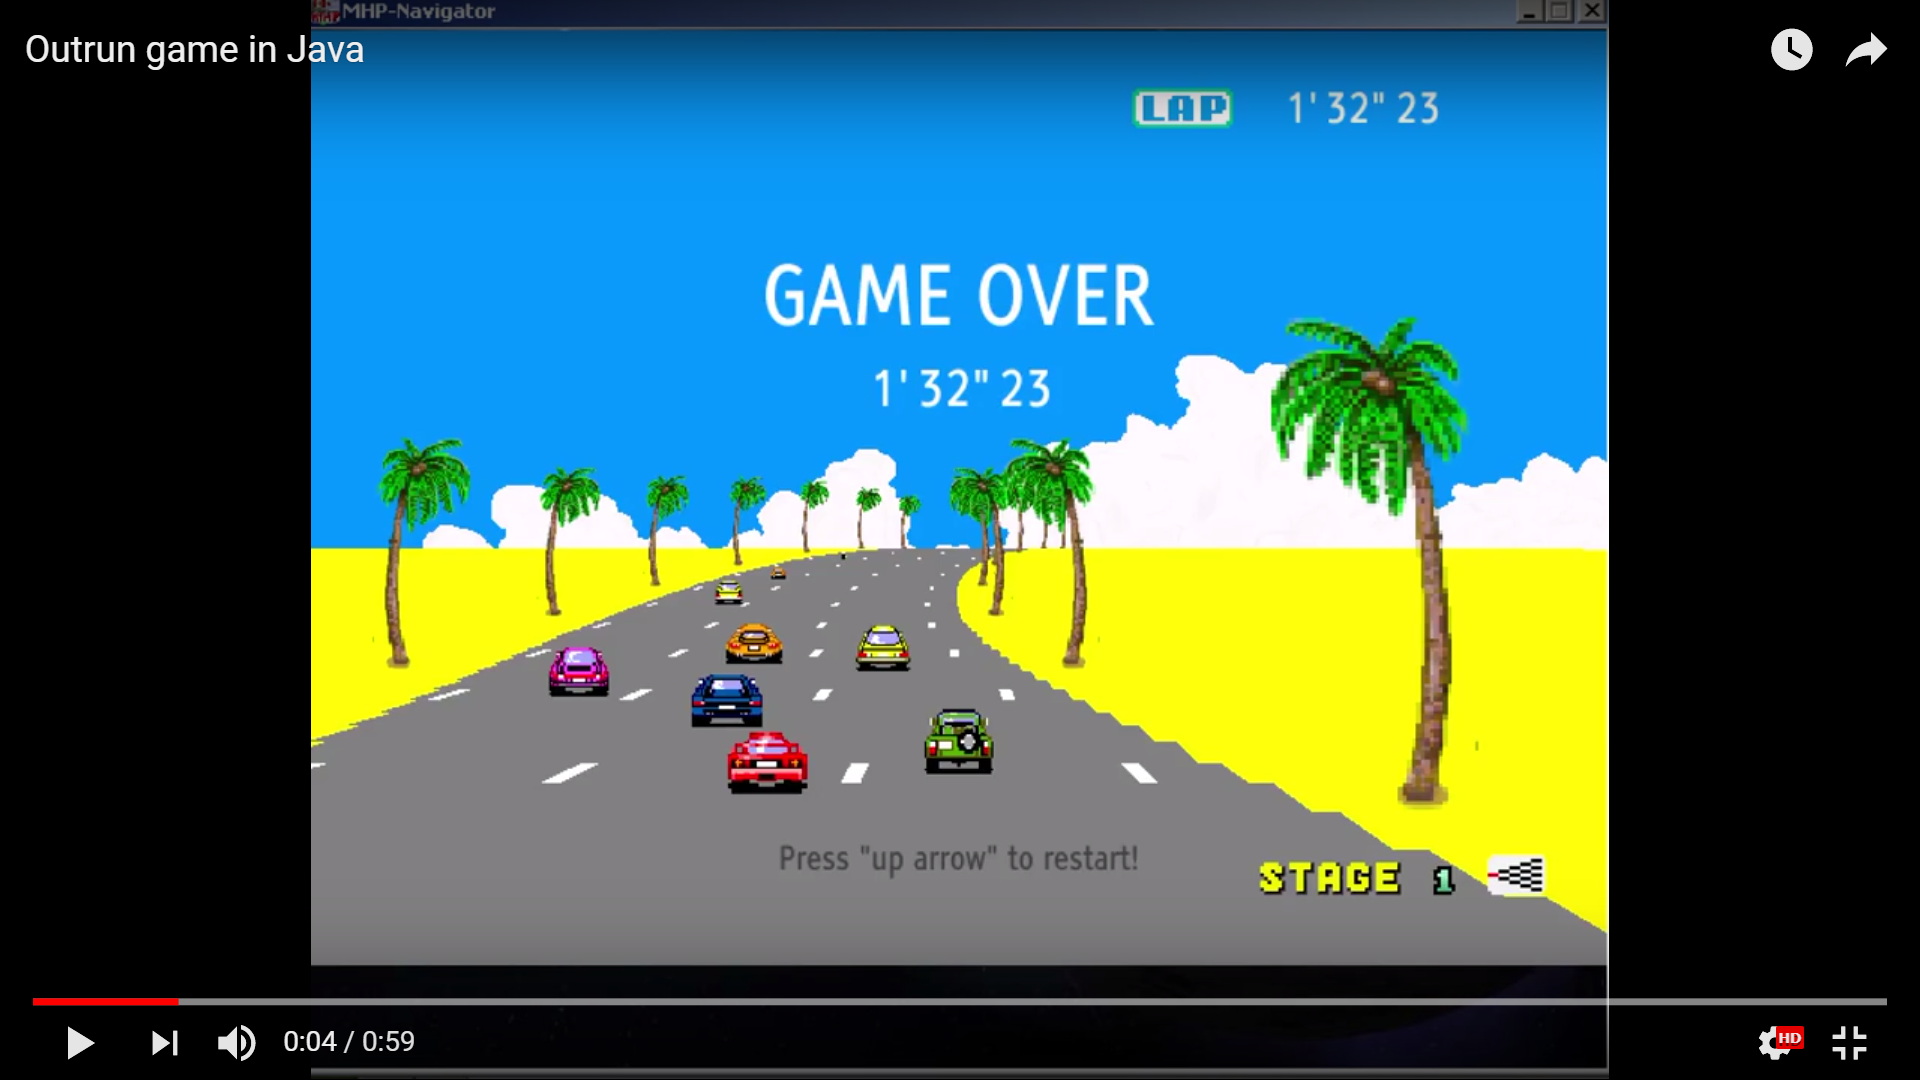 Screenshot from the gameplay video of Outrun